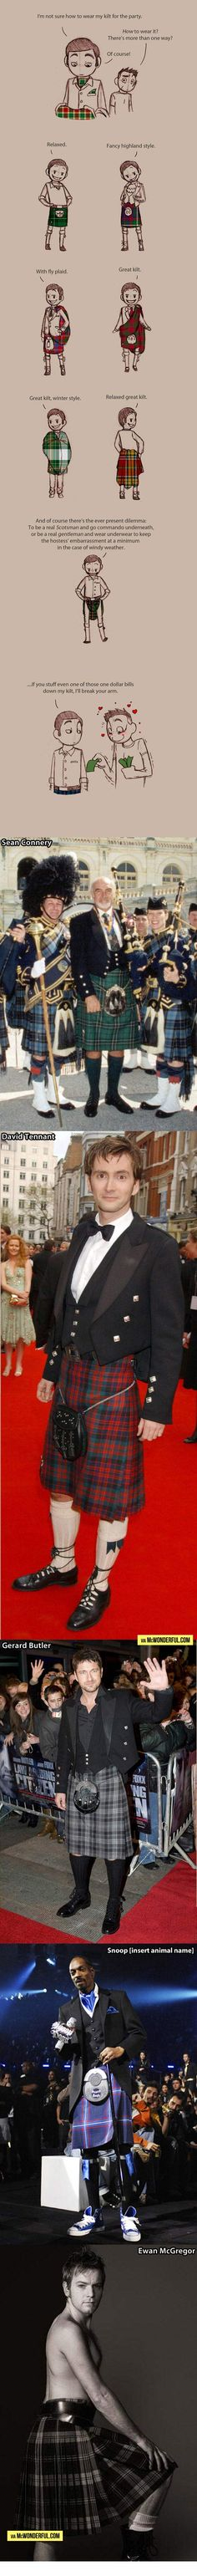 How to wear a kilt…